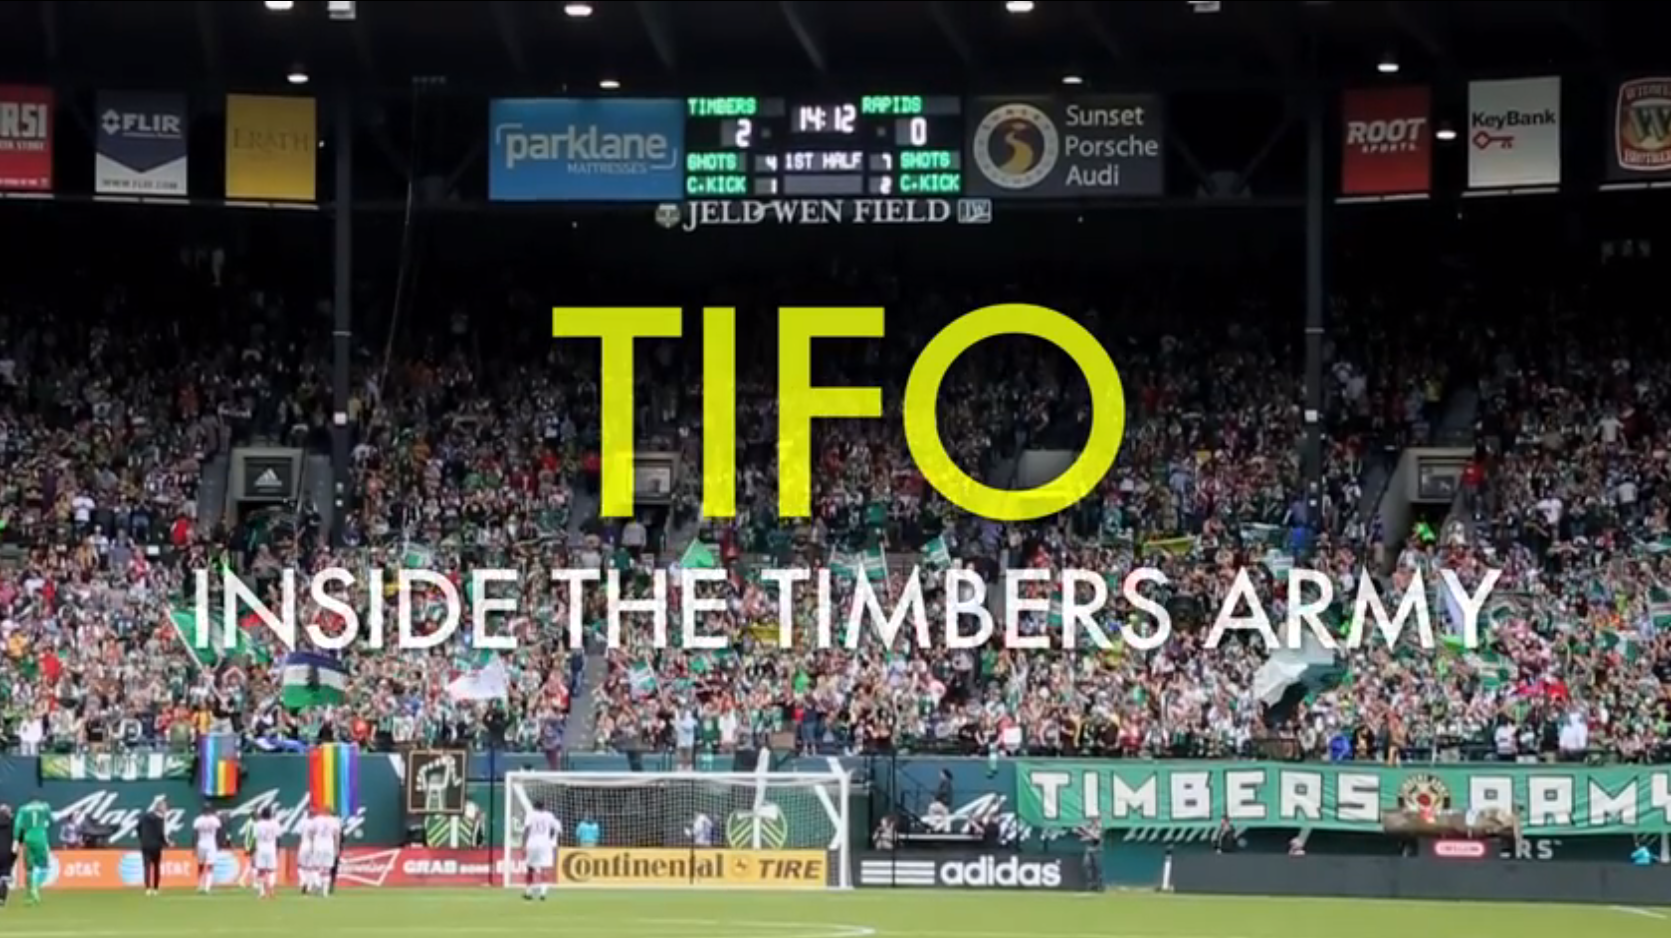 Tifo: Inside the Timbers Army